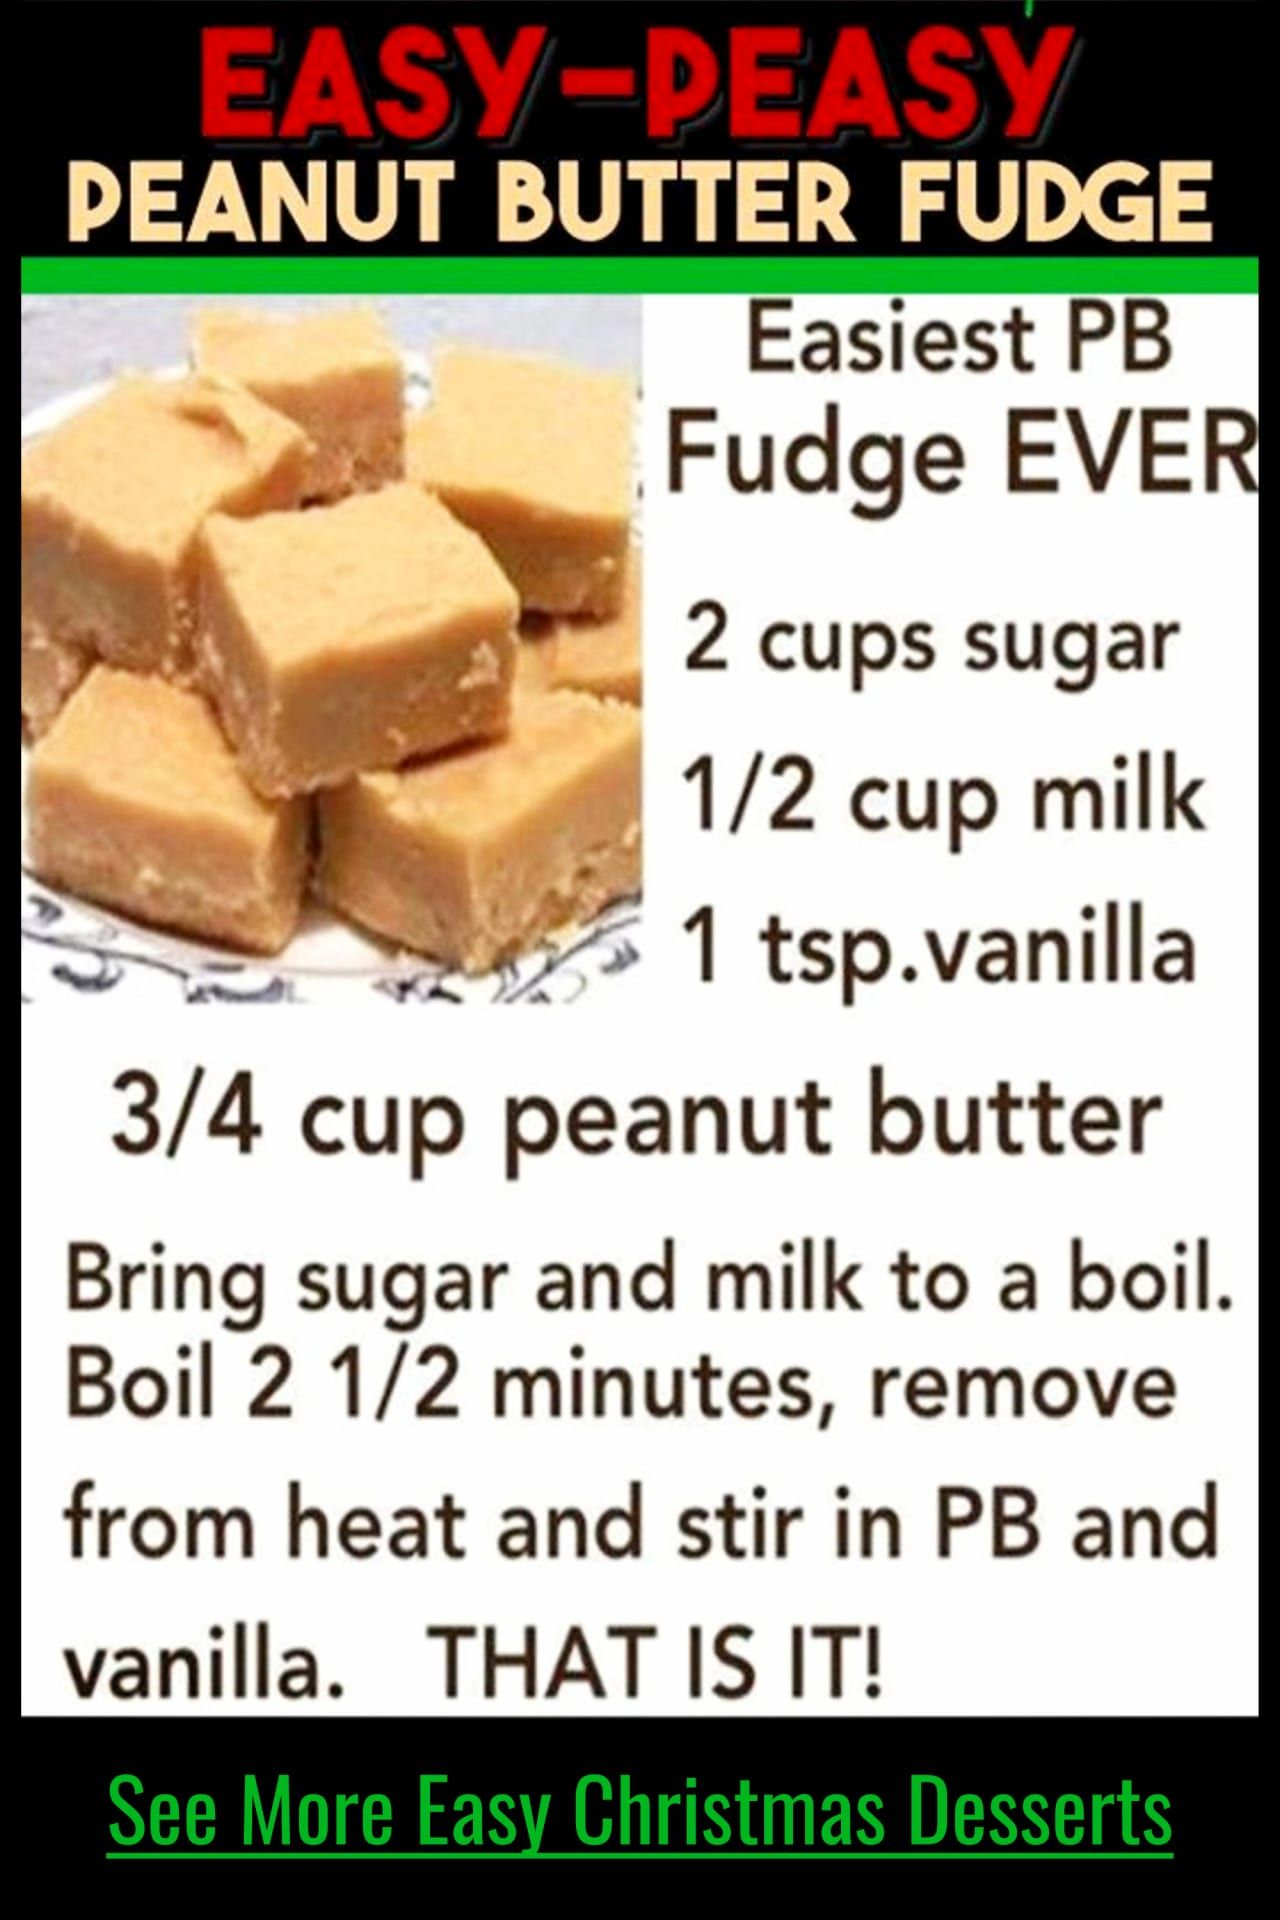 Easy 3 Ingredient Fudge Recipes - Super Simple Sweet Treats For a Crowd, For Parties or as Easy Homemade Dessert Gifts #easysimpledesserts